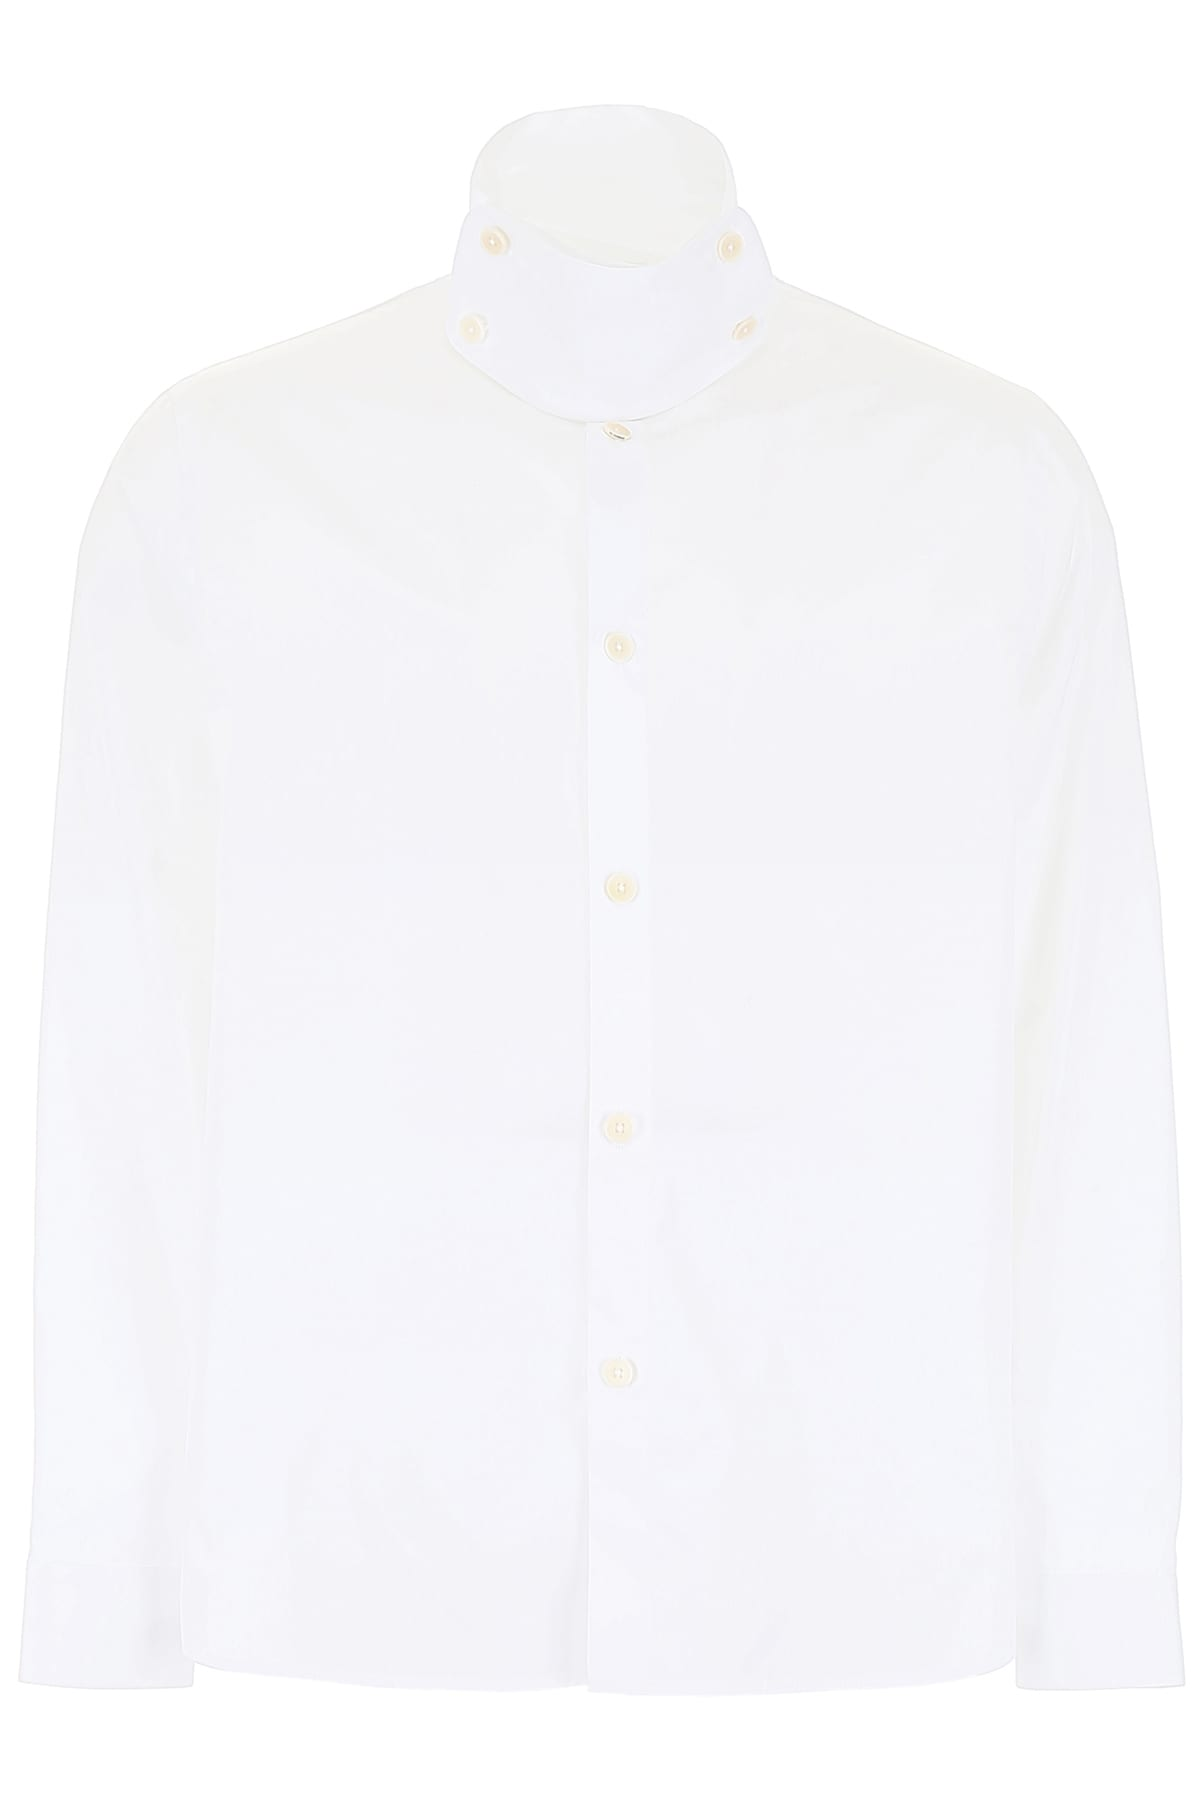 Jil Sander Oversized Cotton Shirt